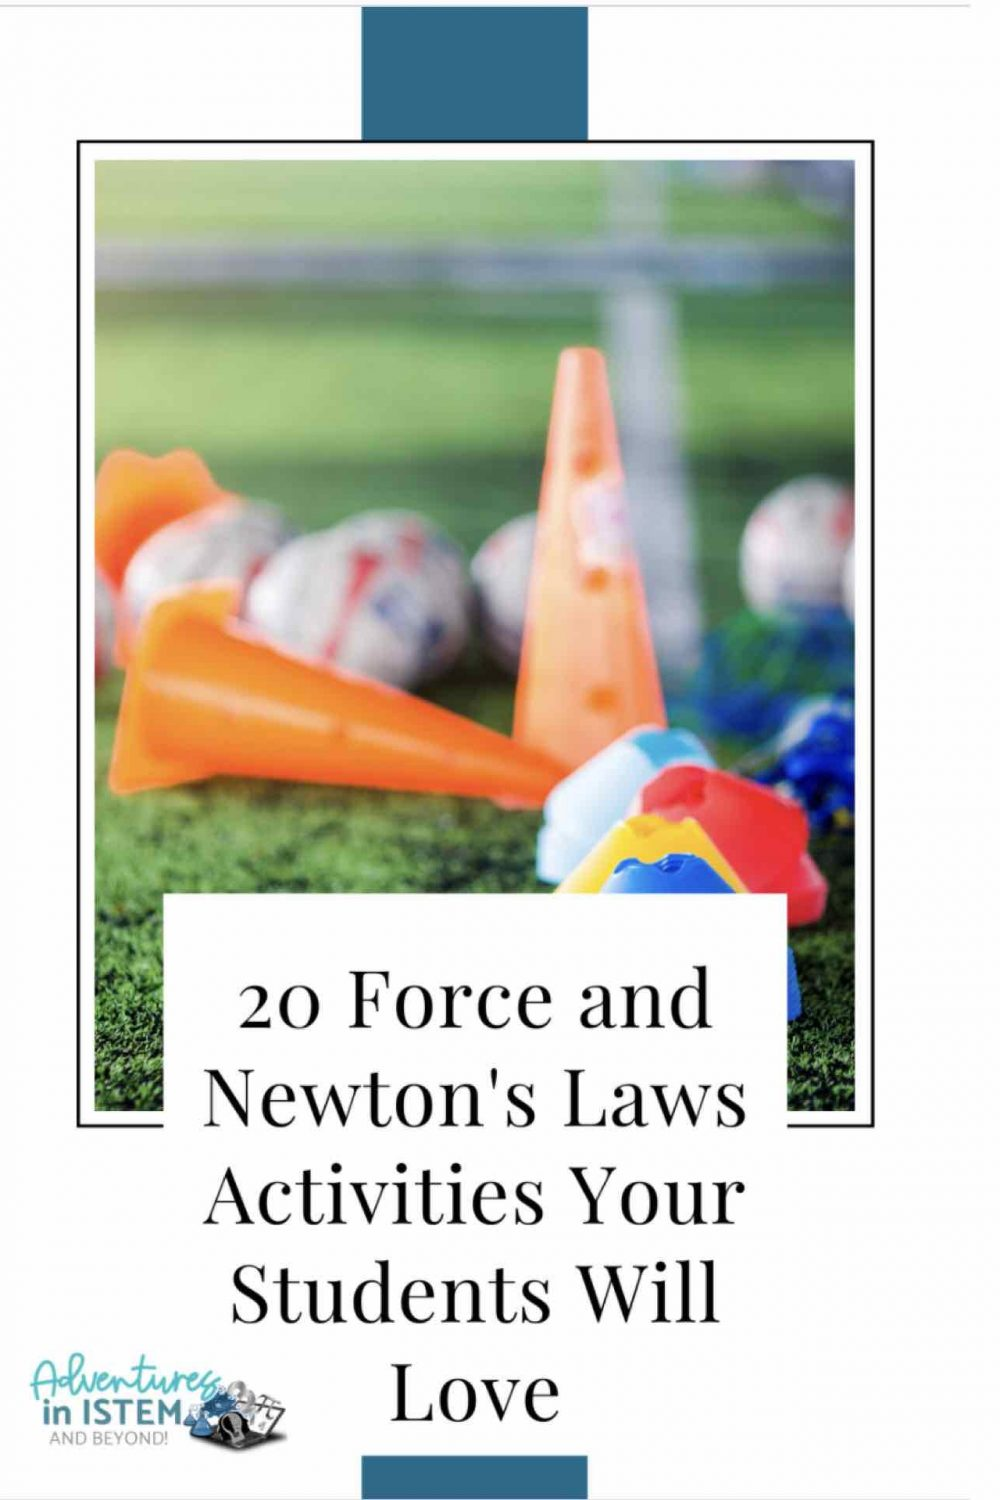 20 Force and Newton's laws activities your students will love